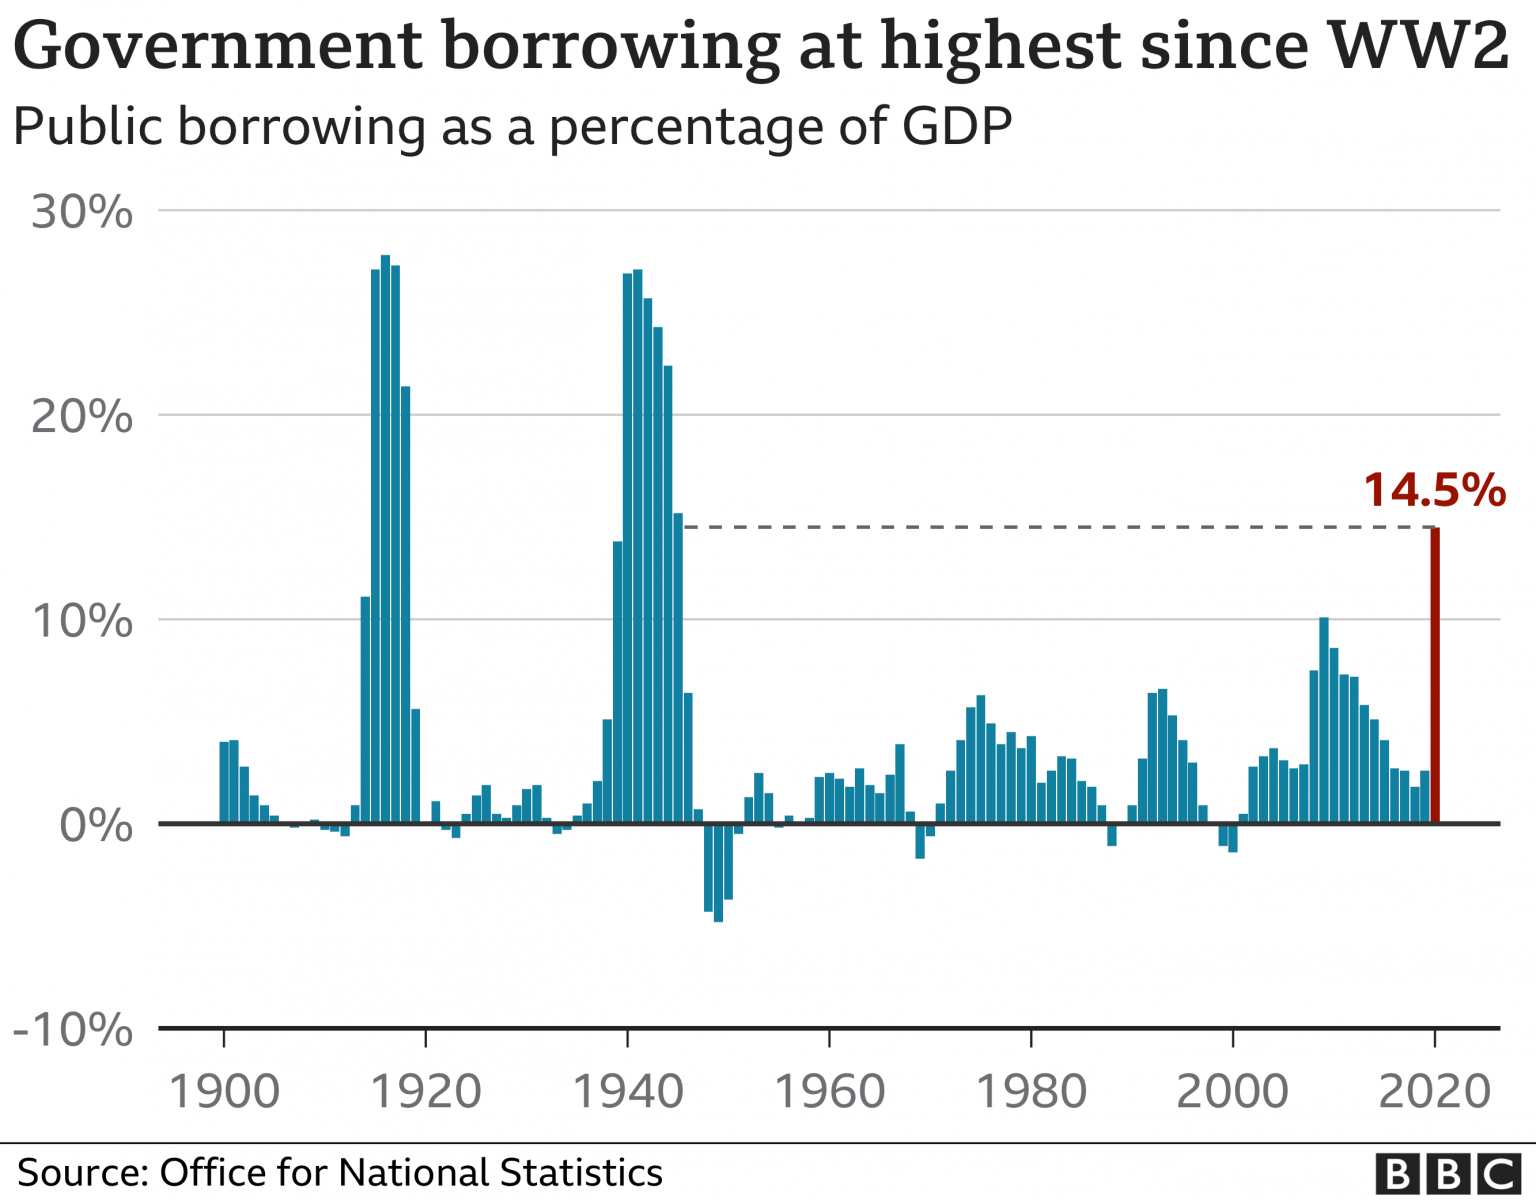 Covid costs push UK government borrowing to highest since WW2